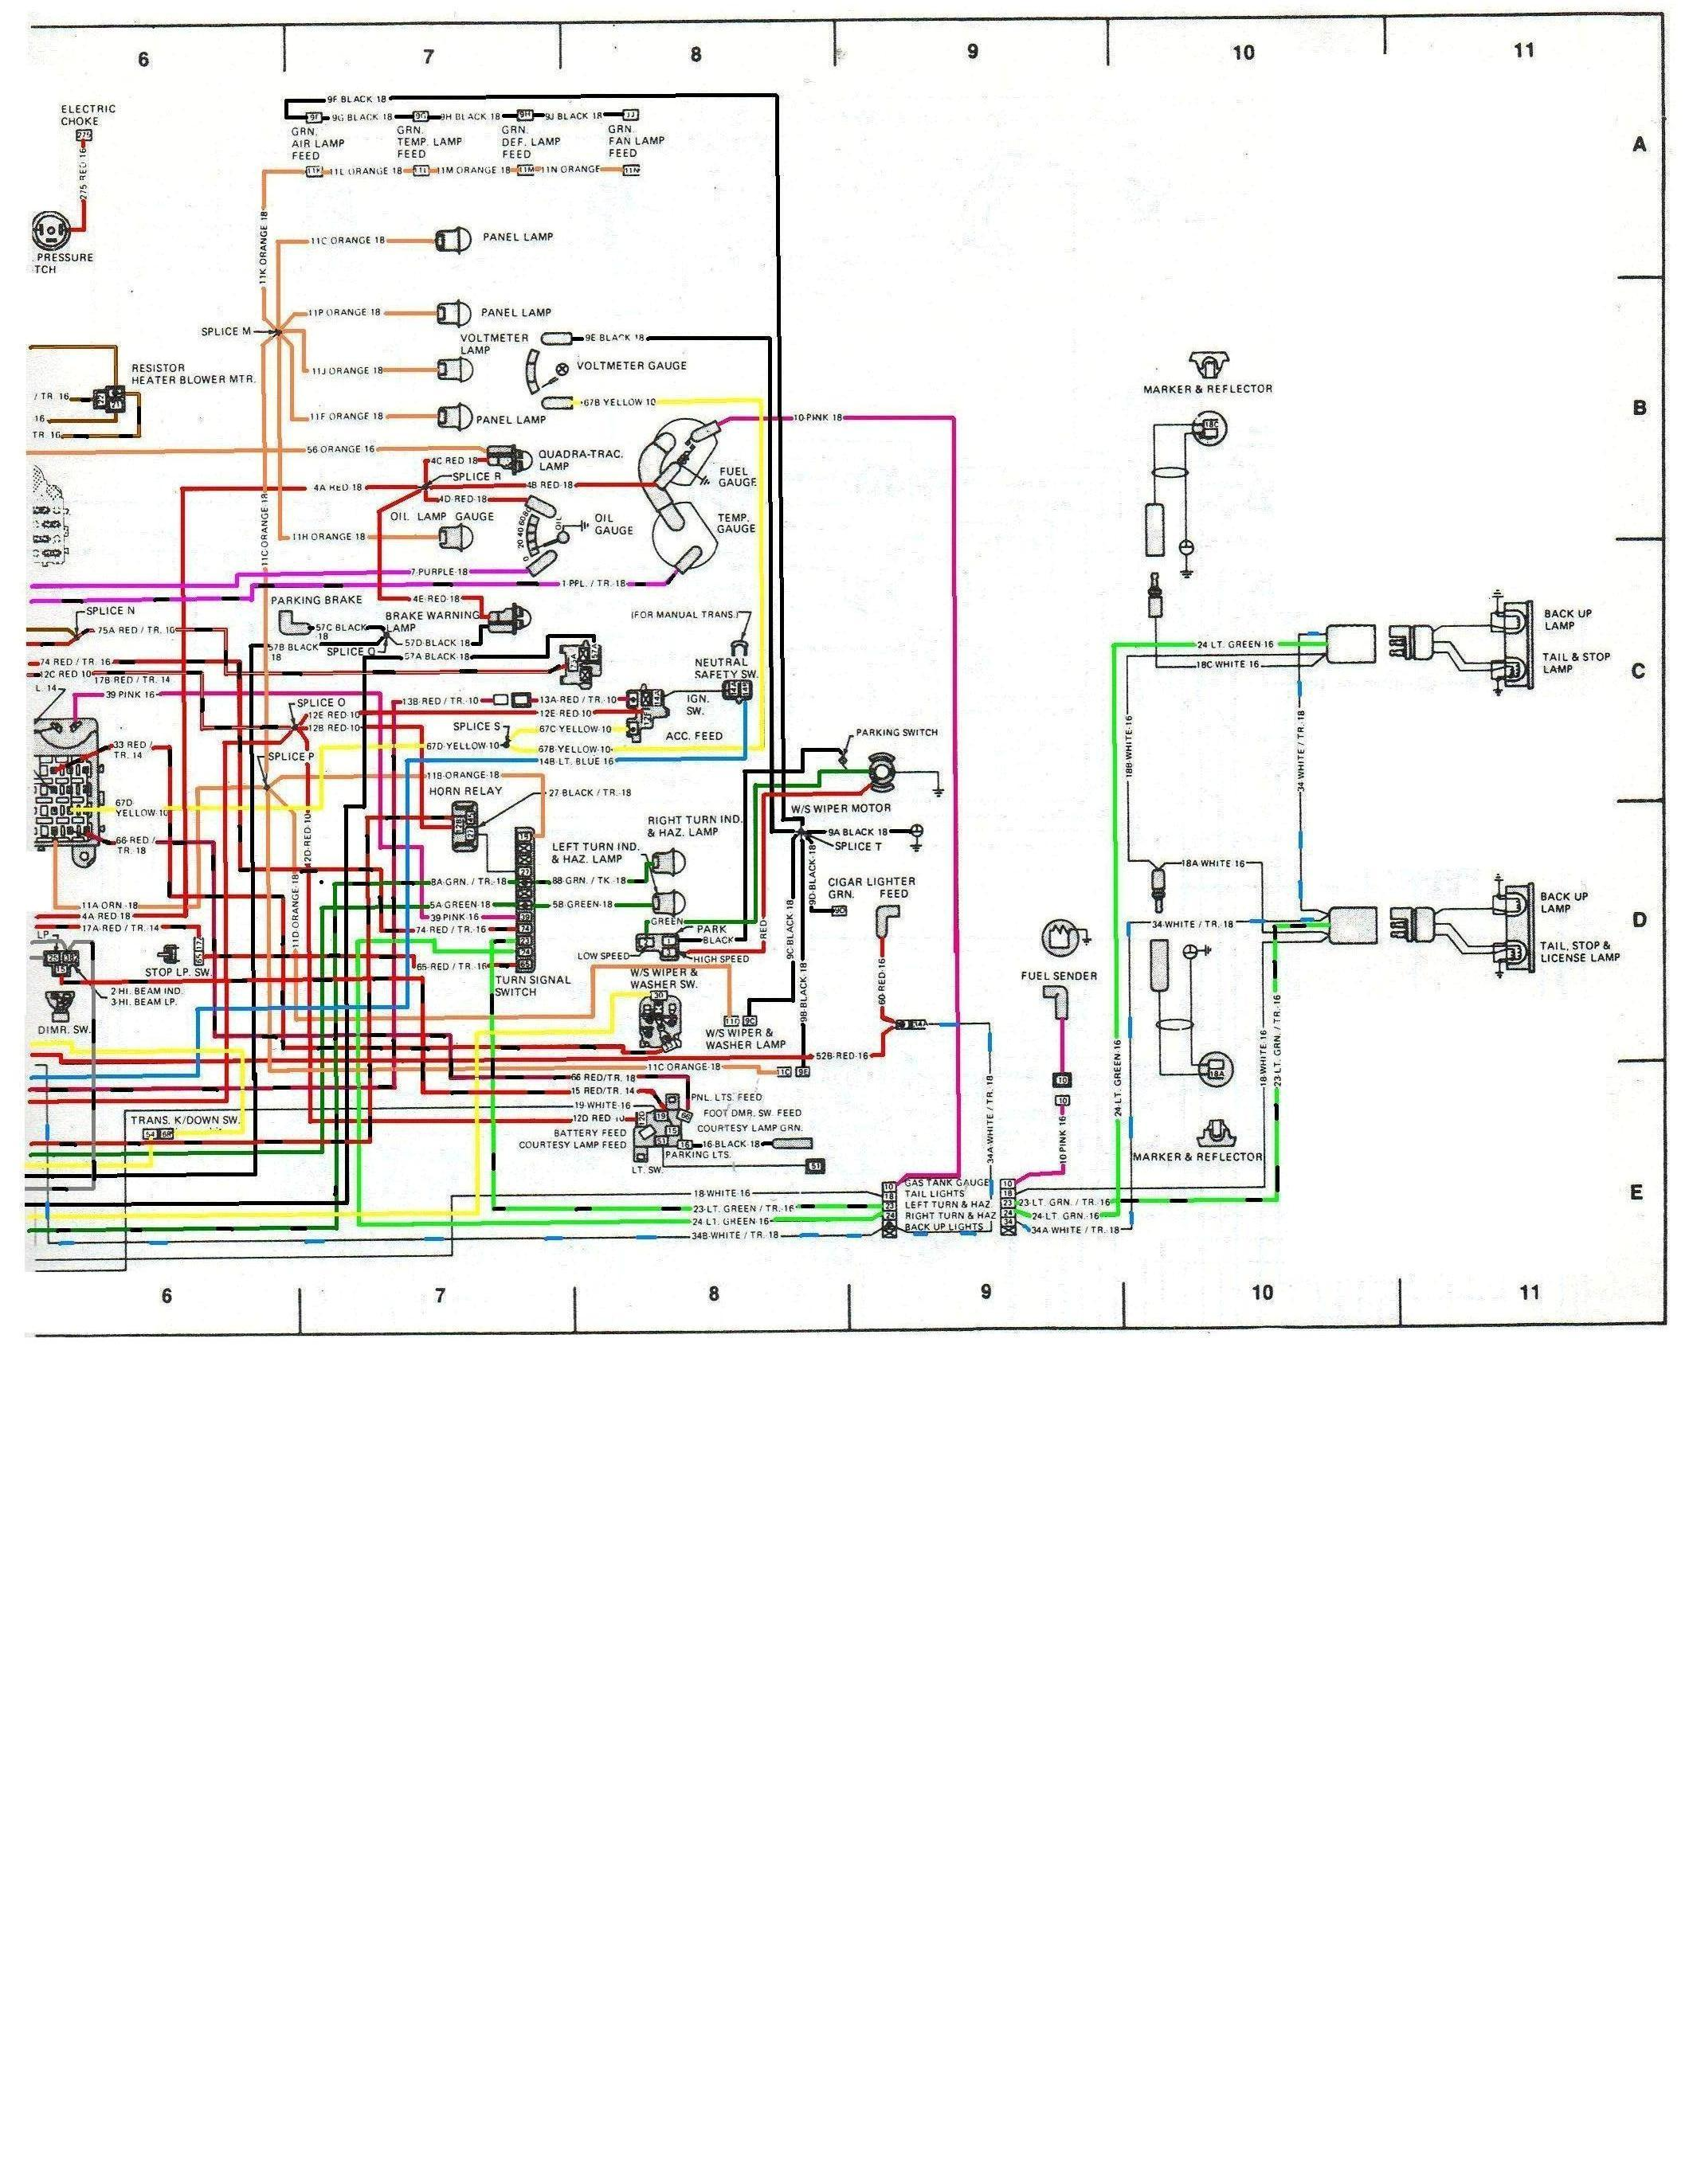 85 Cj7 Wiring Diagram Content Resource Of Wiring Diagram \u2022 1986 Jeep  CJ7 Wiring Light Switch 85 Cj7 Wiring Diagram